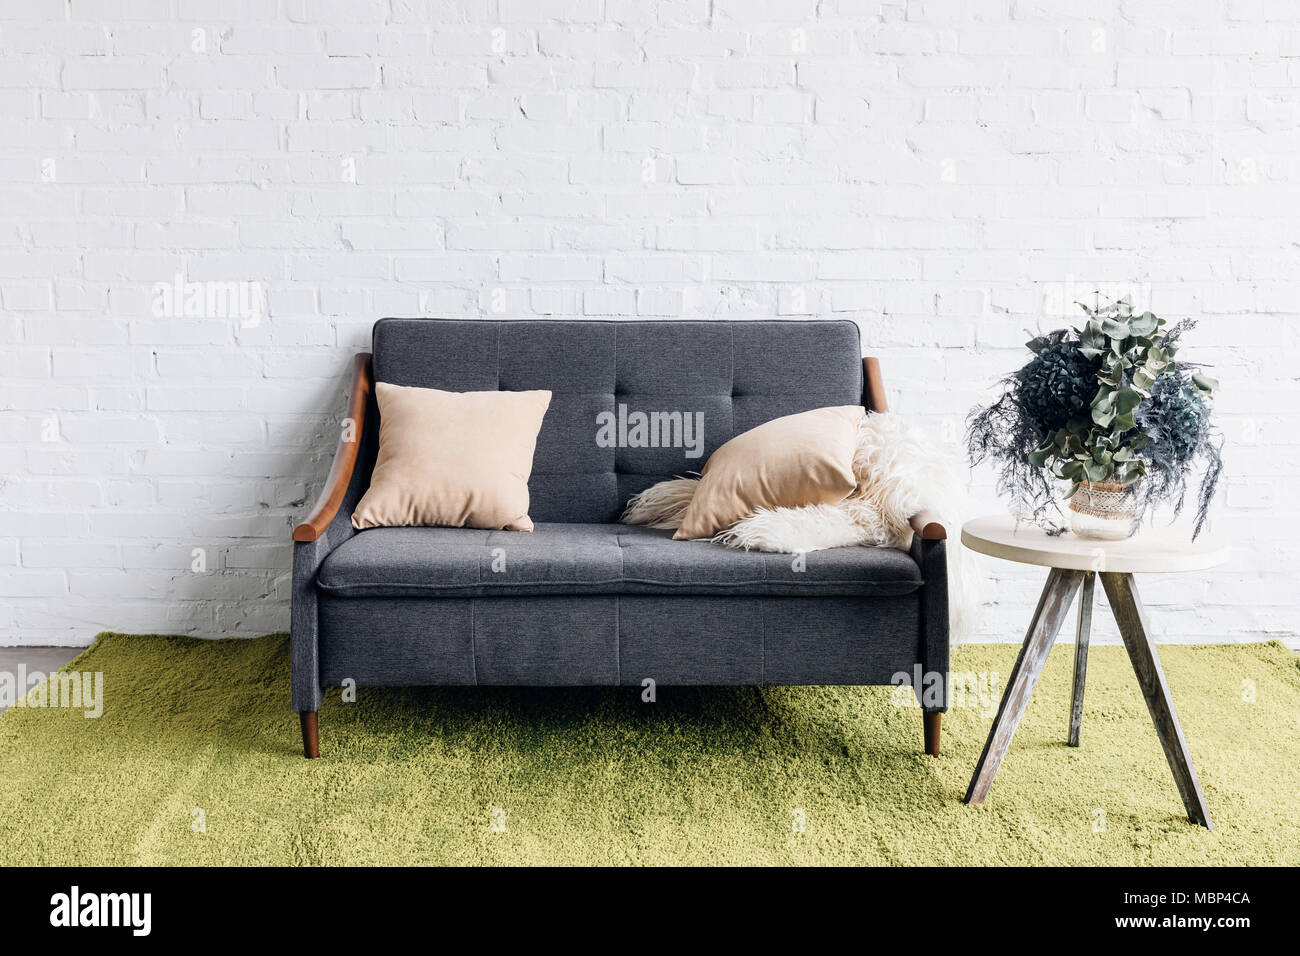 comfy couch in modern living room with white brick wall and flower pot on table, mockup concept - Stock Image